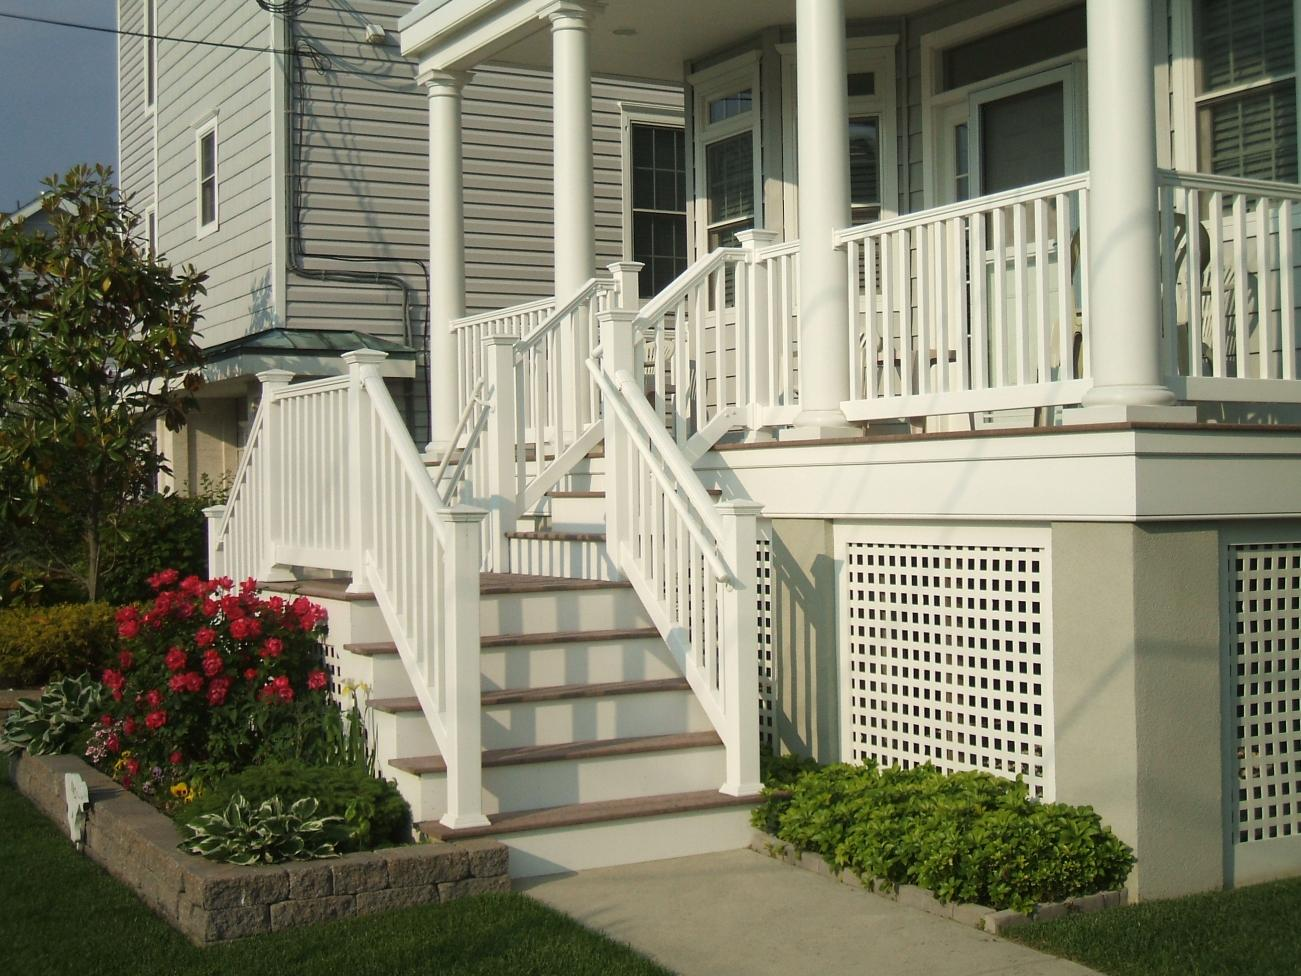 What Material Is Used For White Frame Fascia And Stair